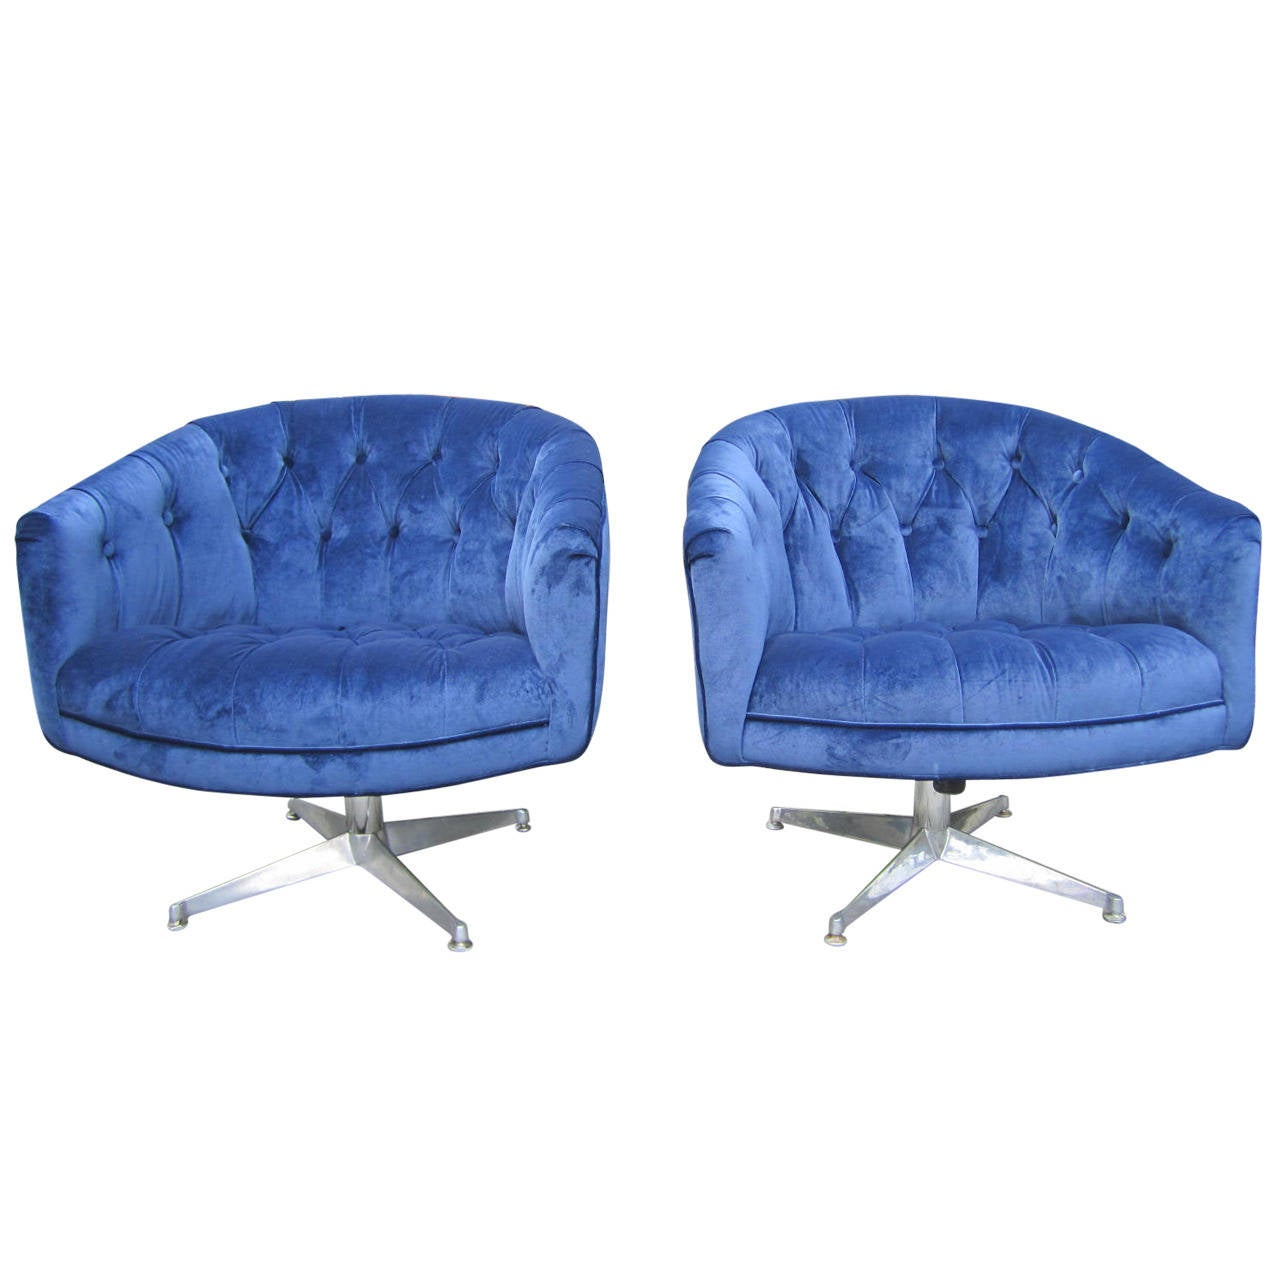 Excellent Pair Of Ward Bennett Style Swivel Club Chairs Mid Century Modern For